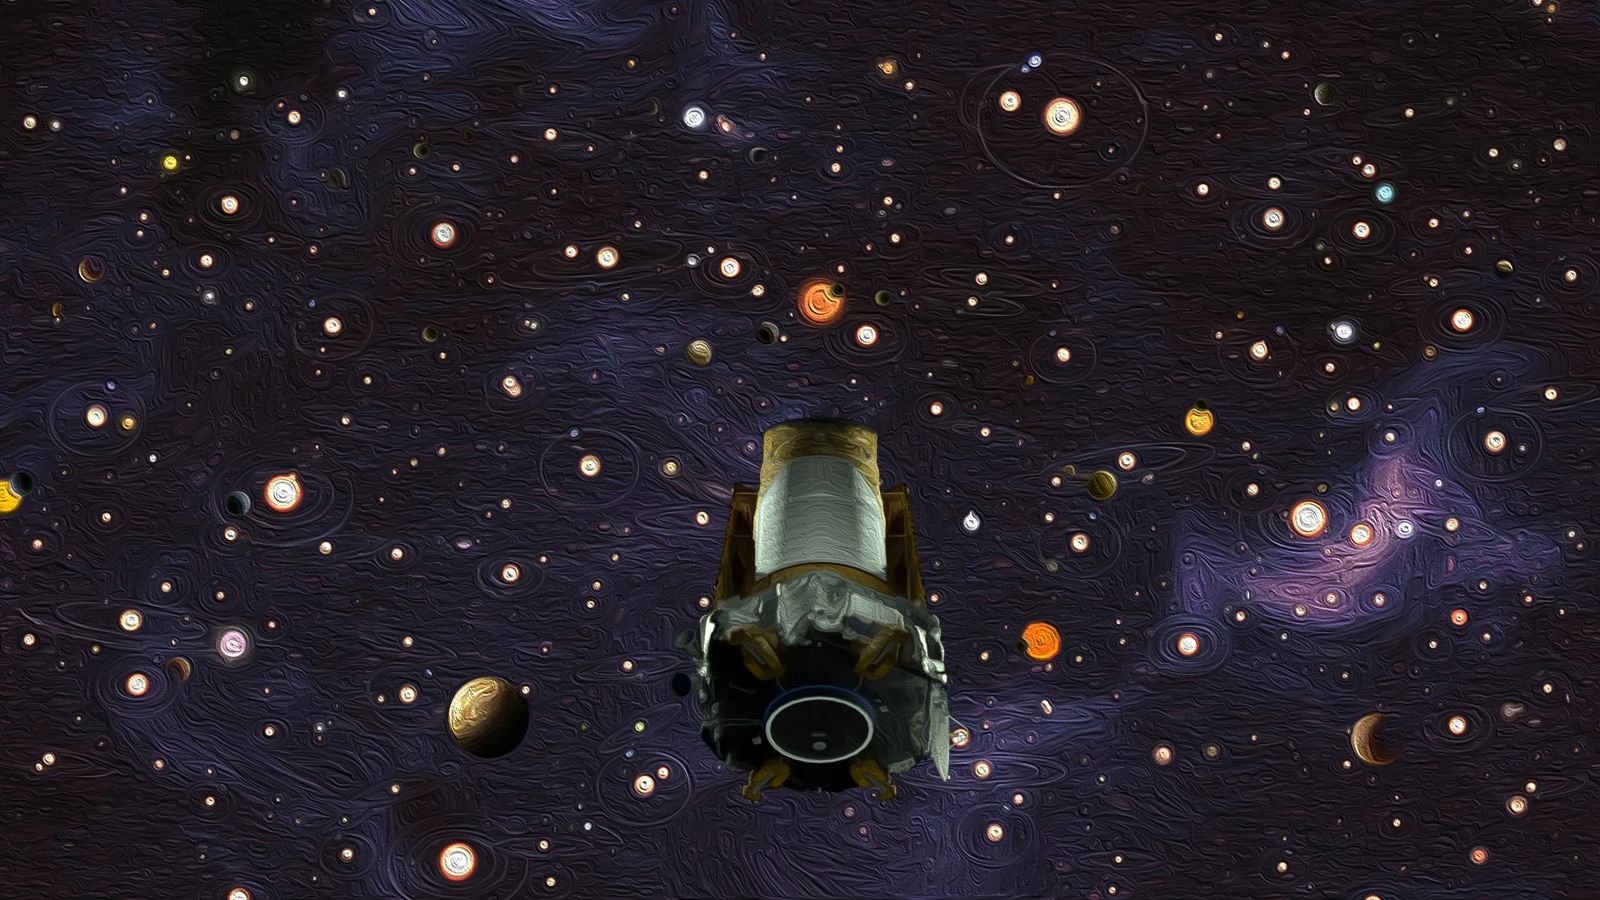 Kepler Space Telescope concludes mission that discovered ...